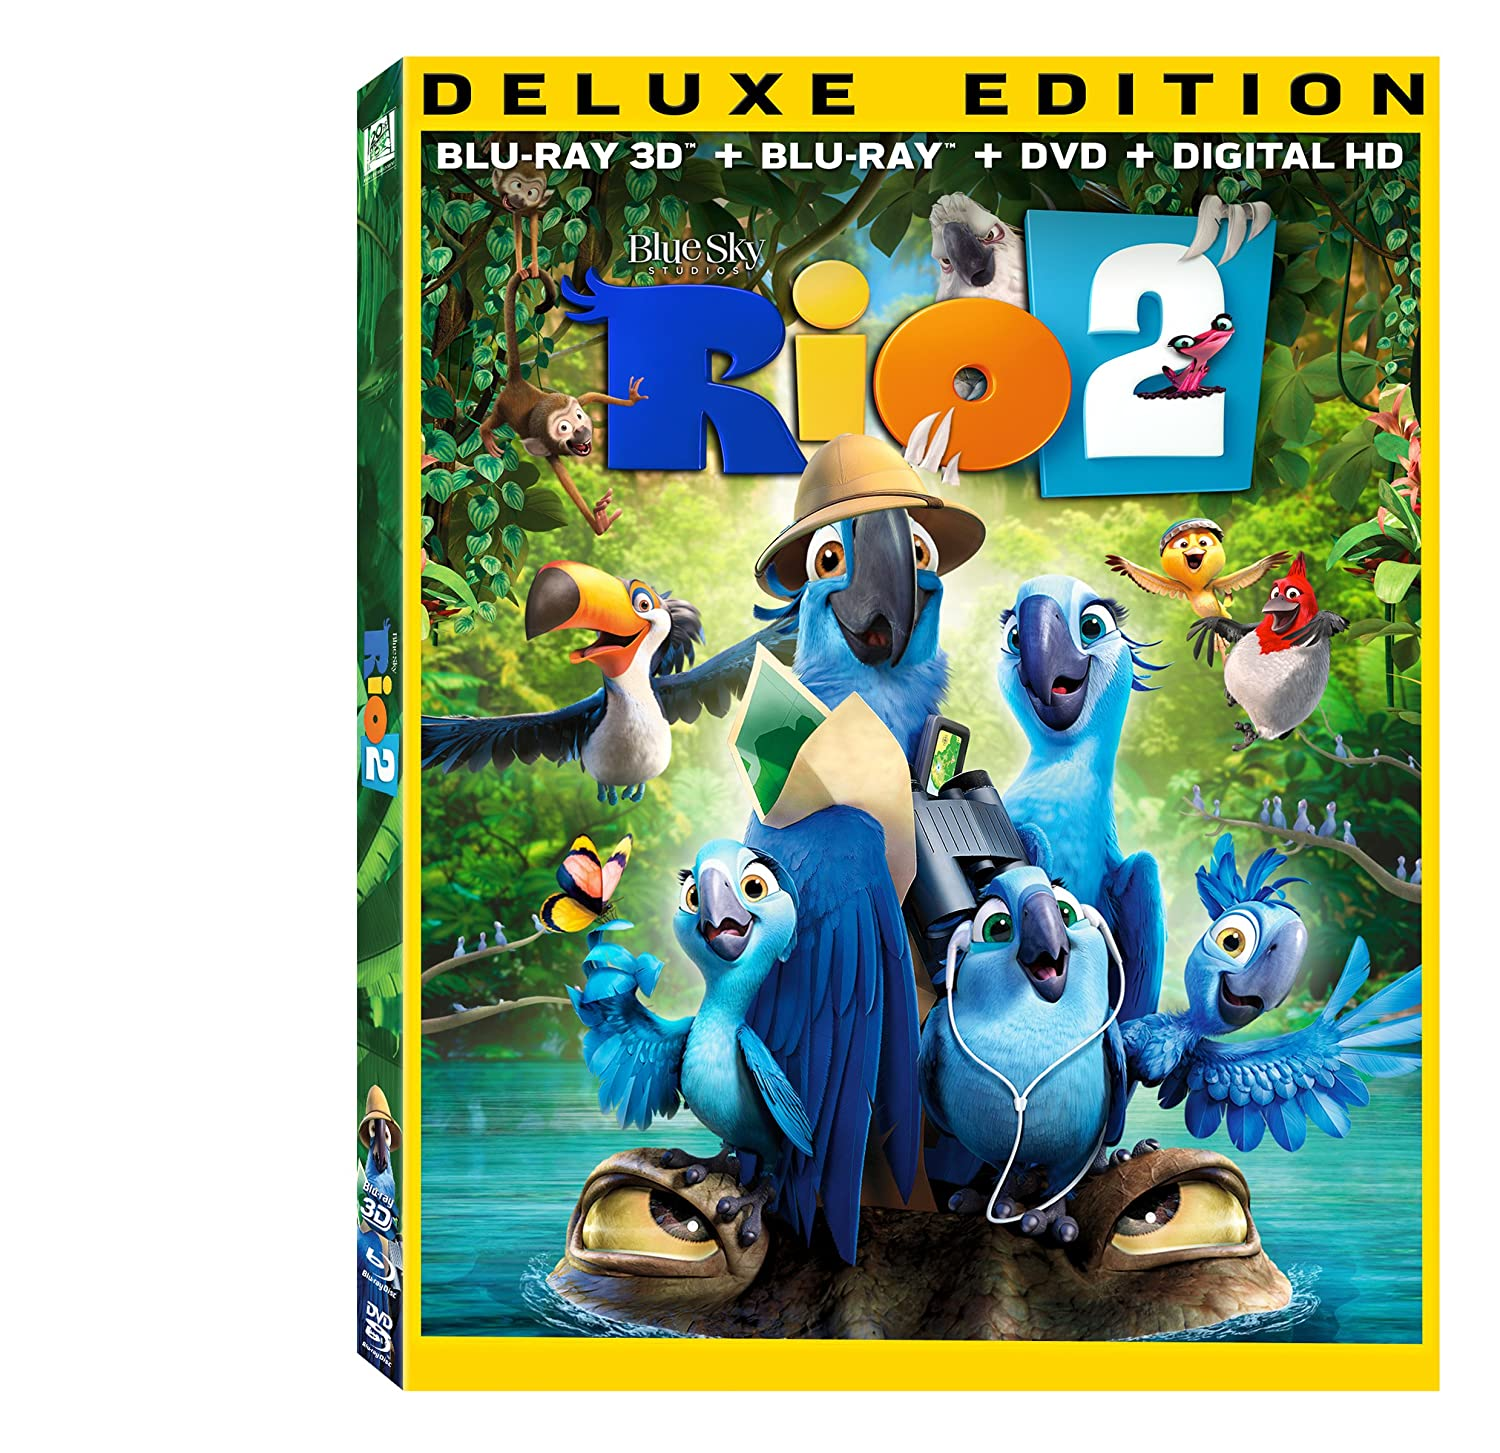 Amazon.com: Rio 2 (3D Blu-ray): Explore similar items